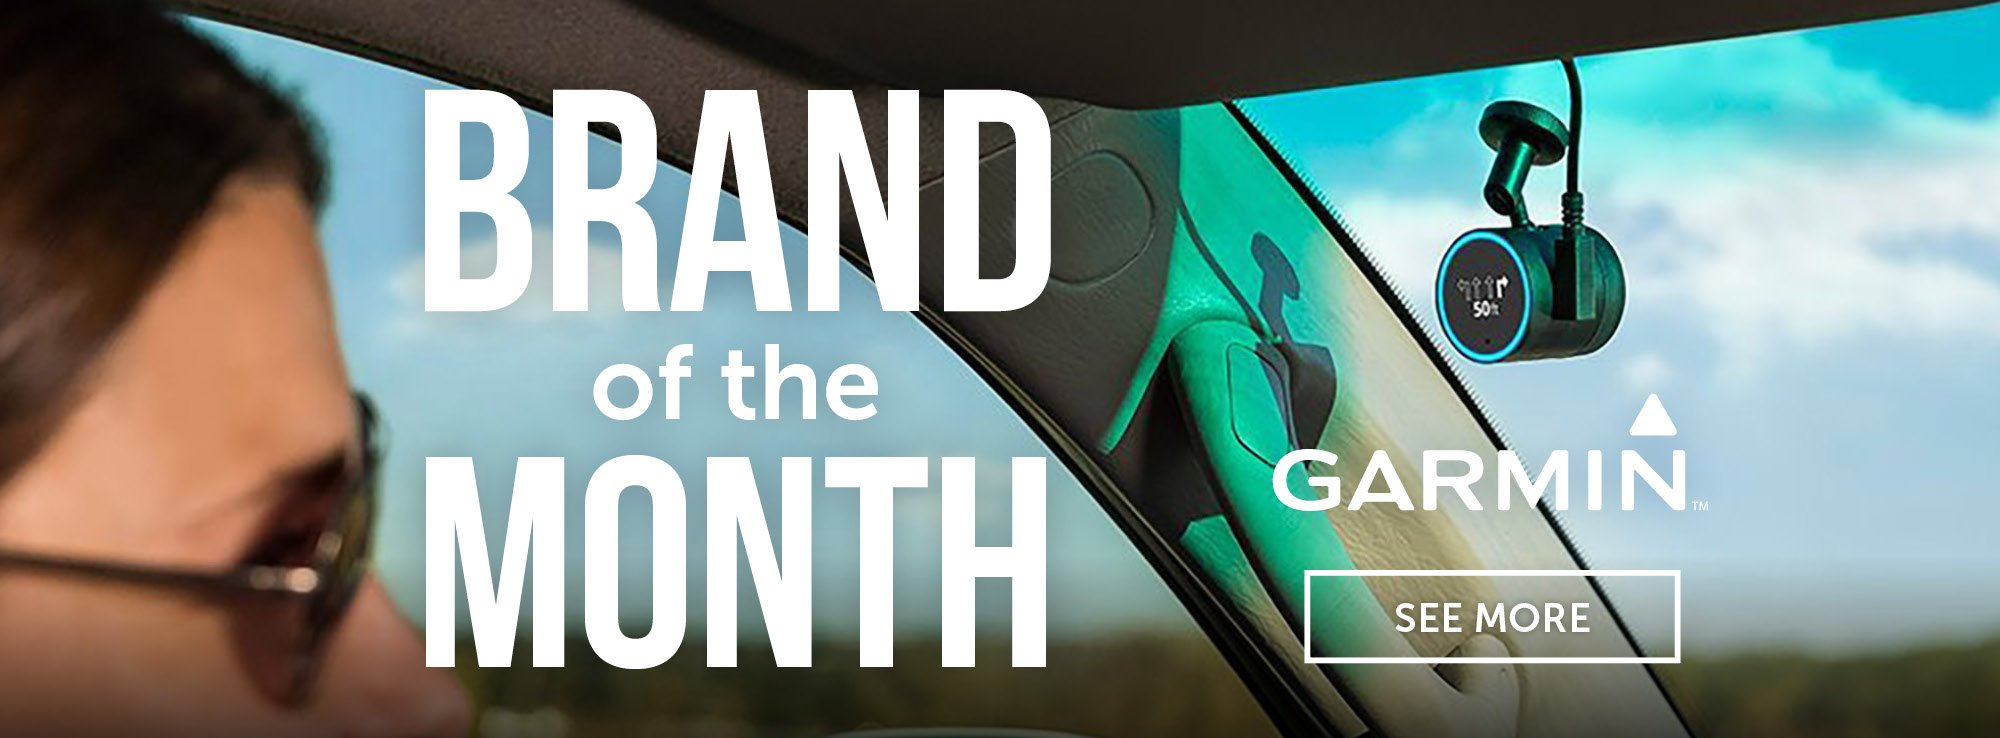 Brand of the Month December, 2018: Garmin